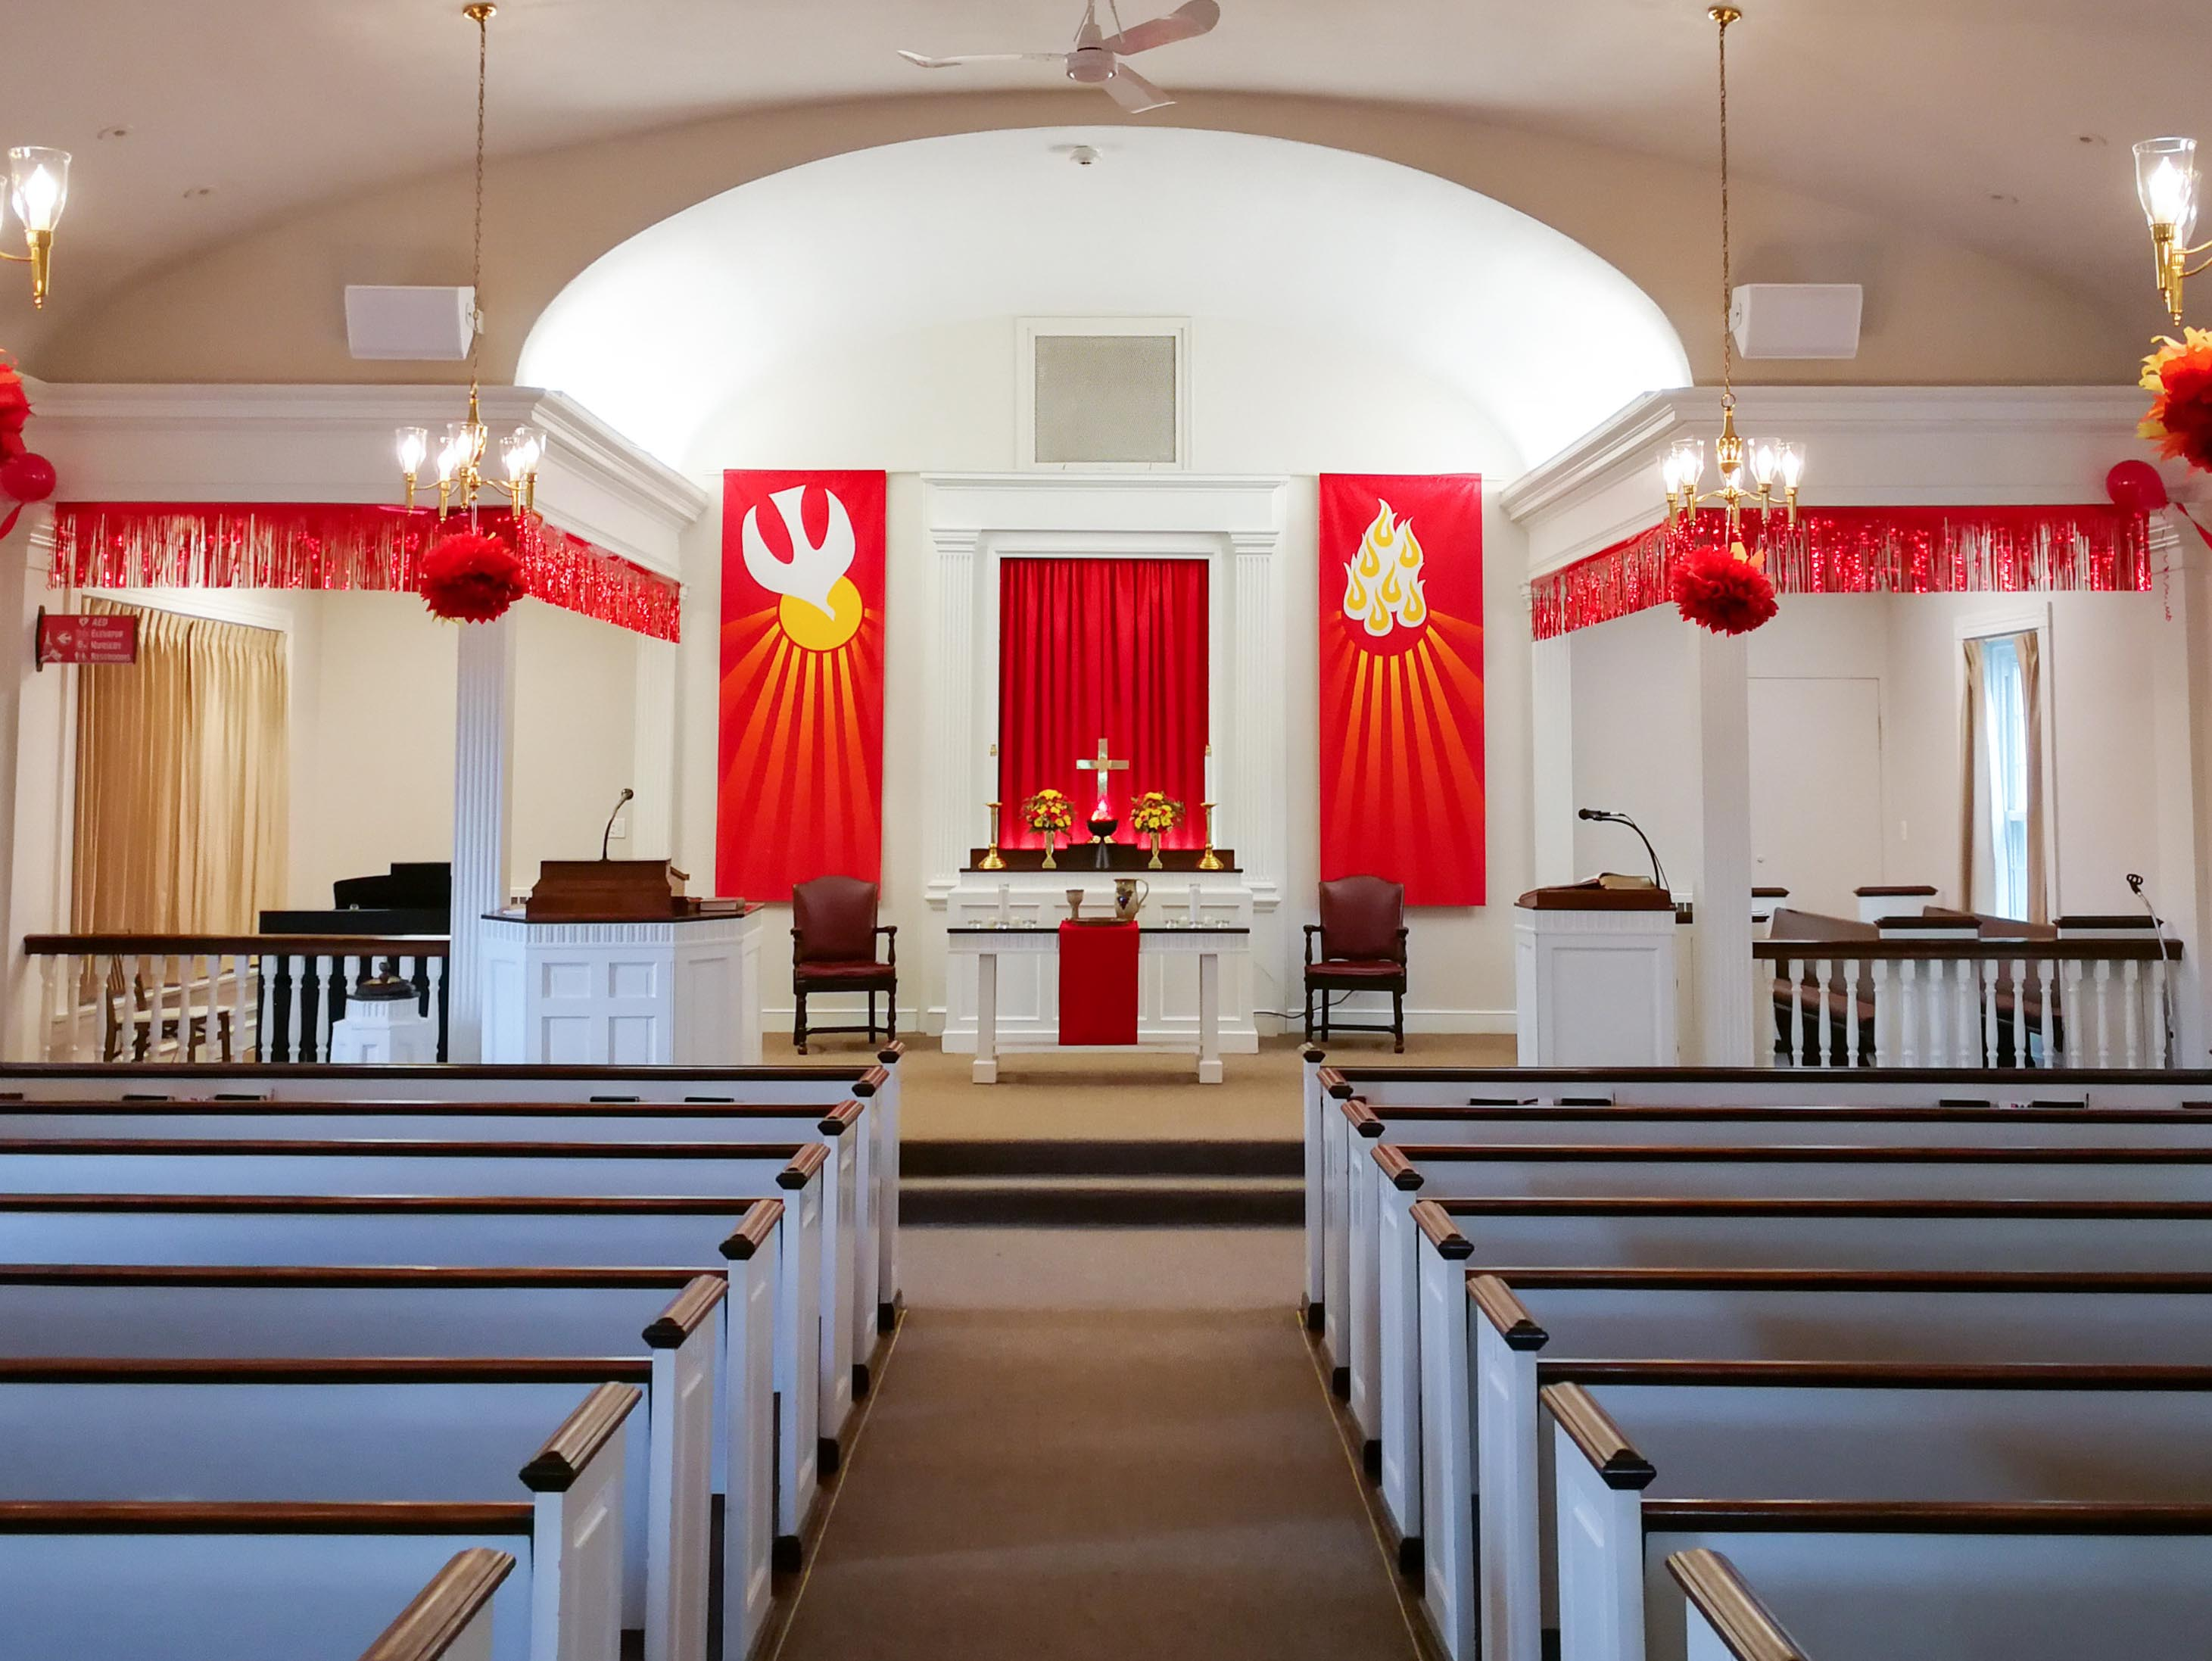 Sanctuary decked out for Pentecost